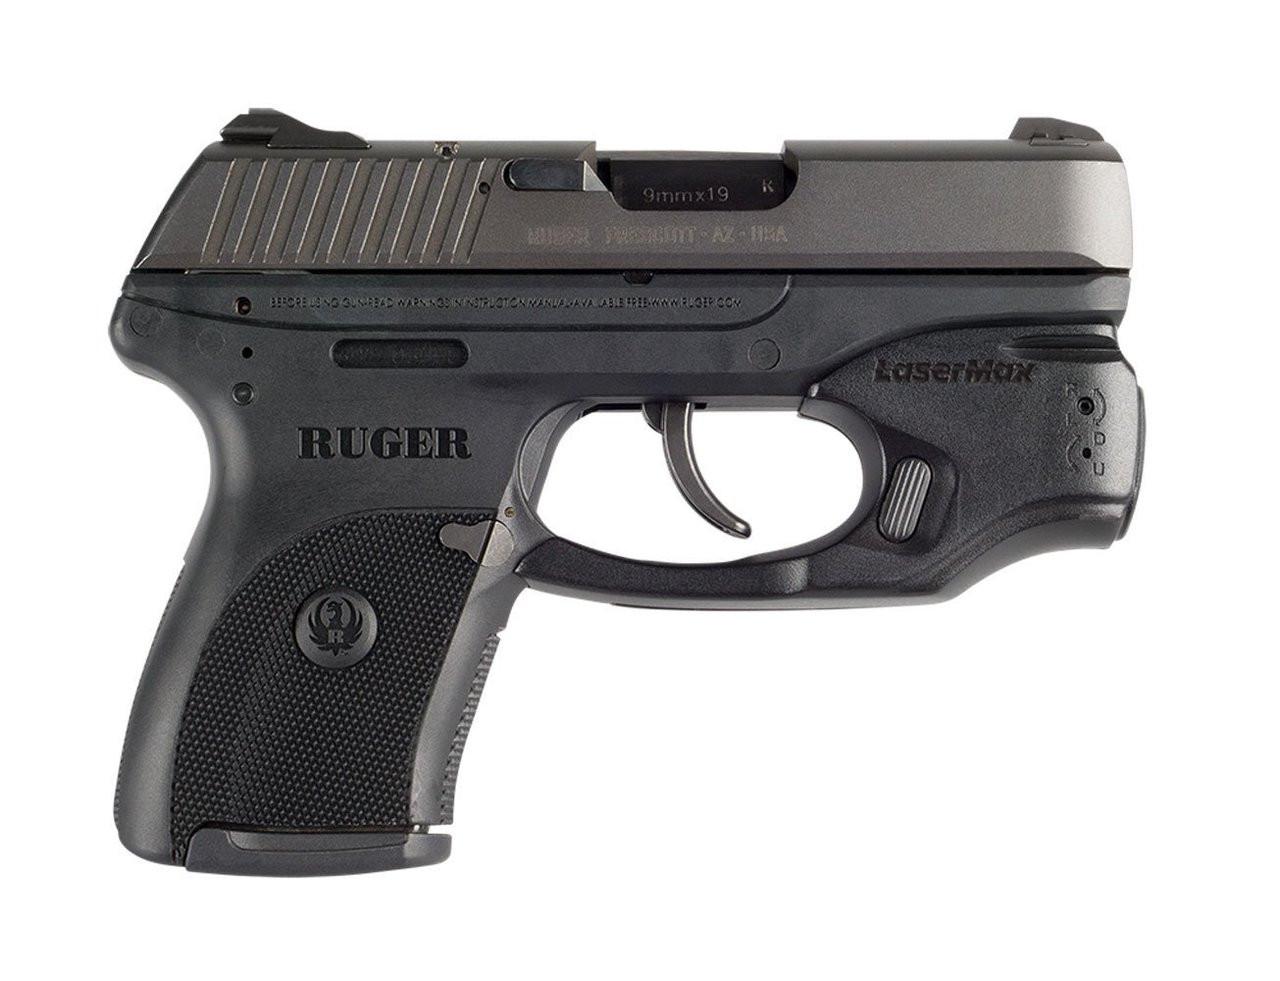 LASERMAX CenterFire Light and Green Laser with GripSense for Ruger  LC9/LC9s/LC380 (CF-LC9-C-G)